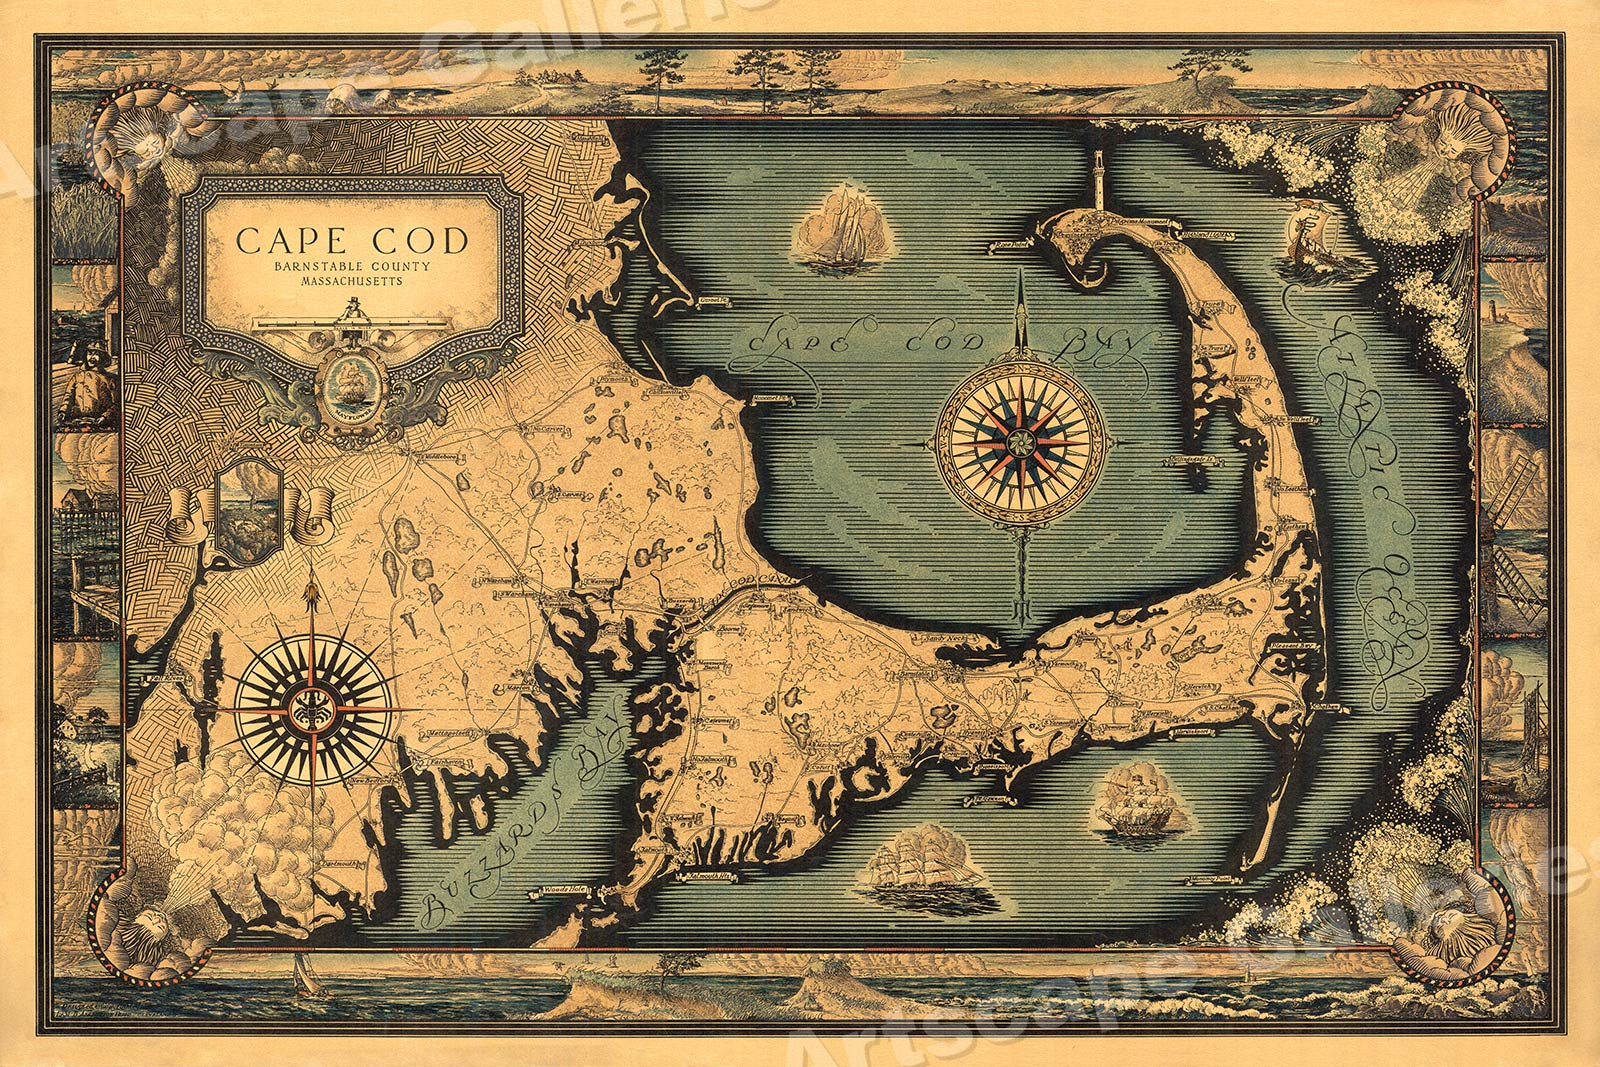 Details about 1930s Cape Cod Historic Old Wall Map - 20x30